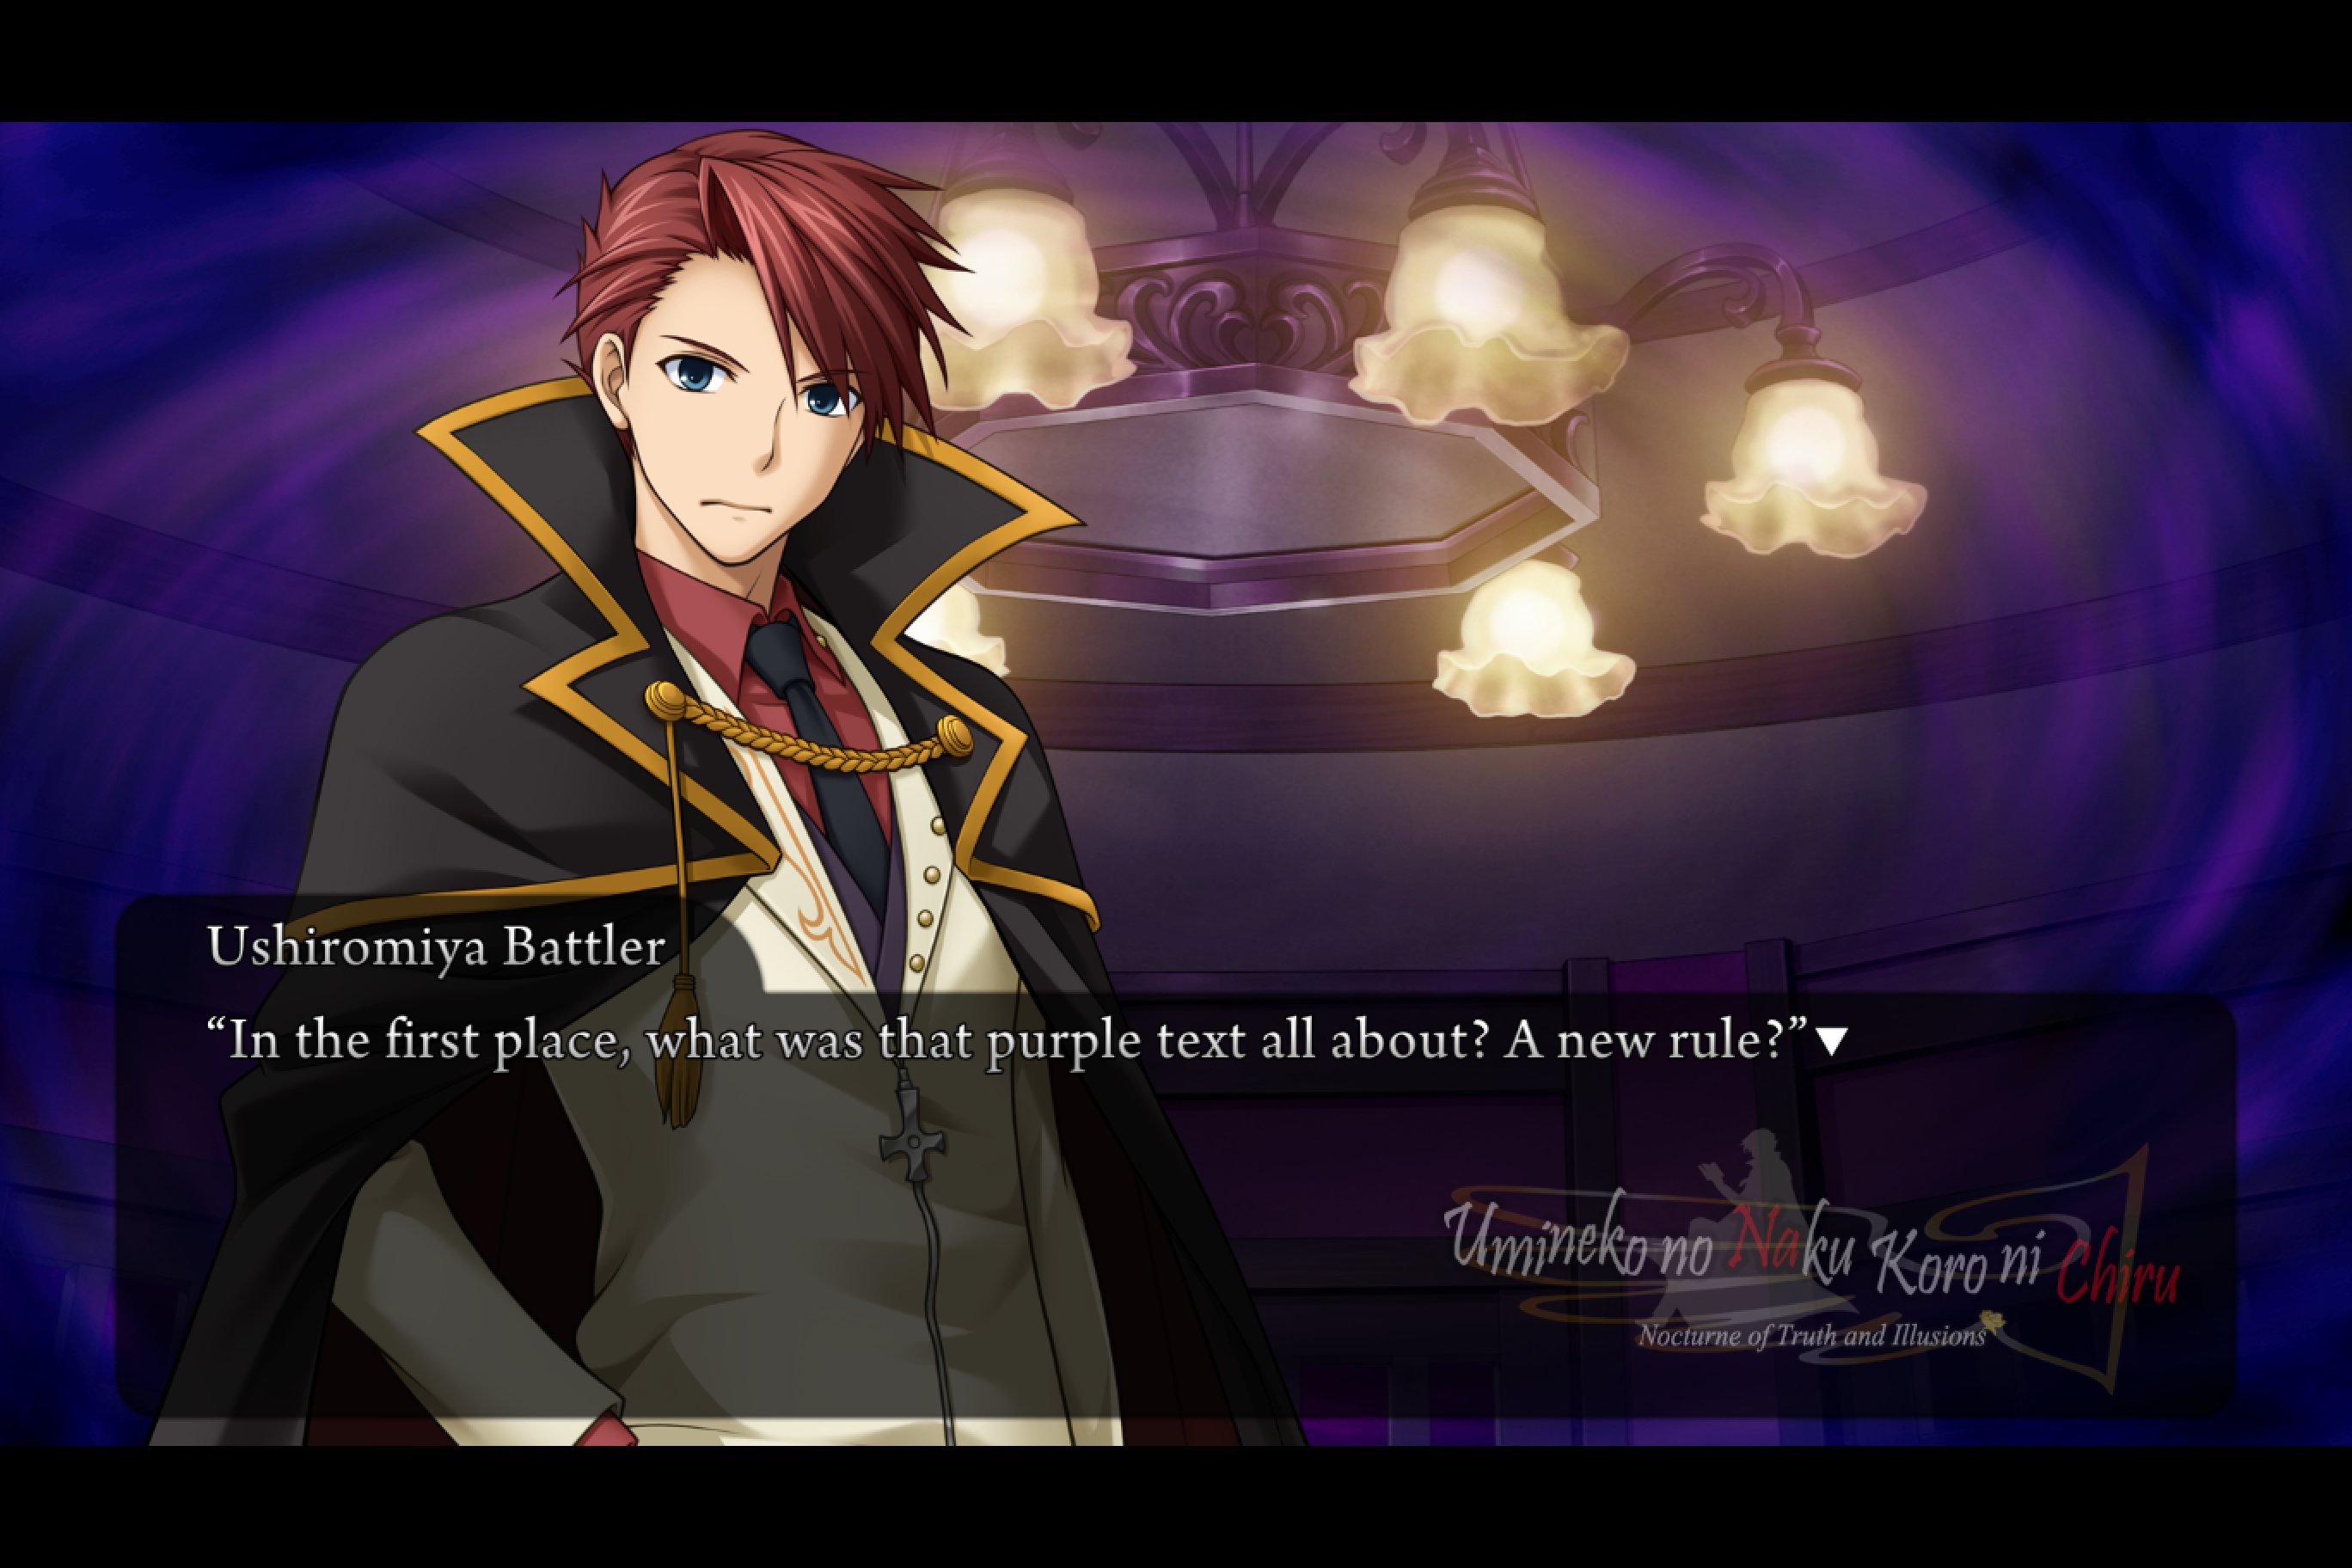 Umineko no Naku Koro ni Chiru ~Nocturne of Truth and Illusions~ (8.2a) 6_1_2020 11_43_45 PM.png